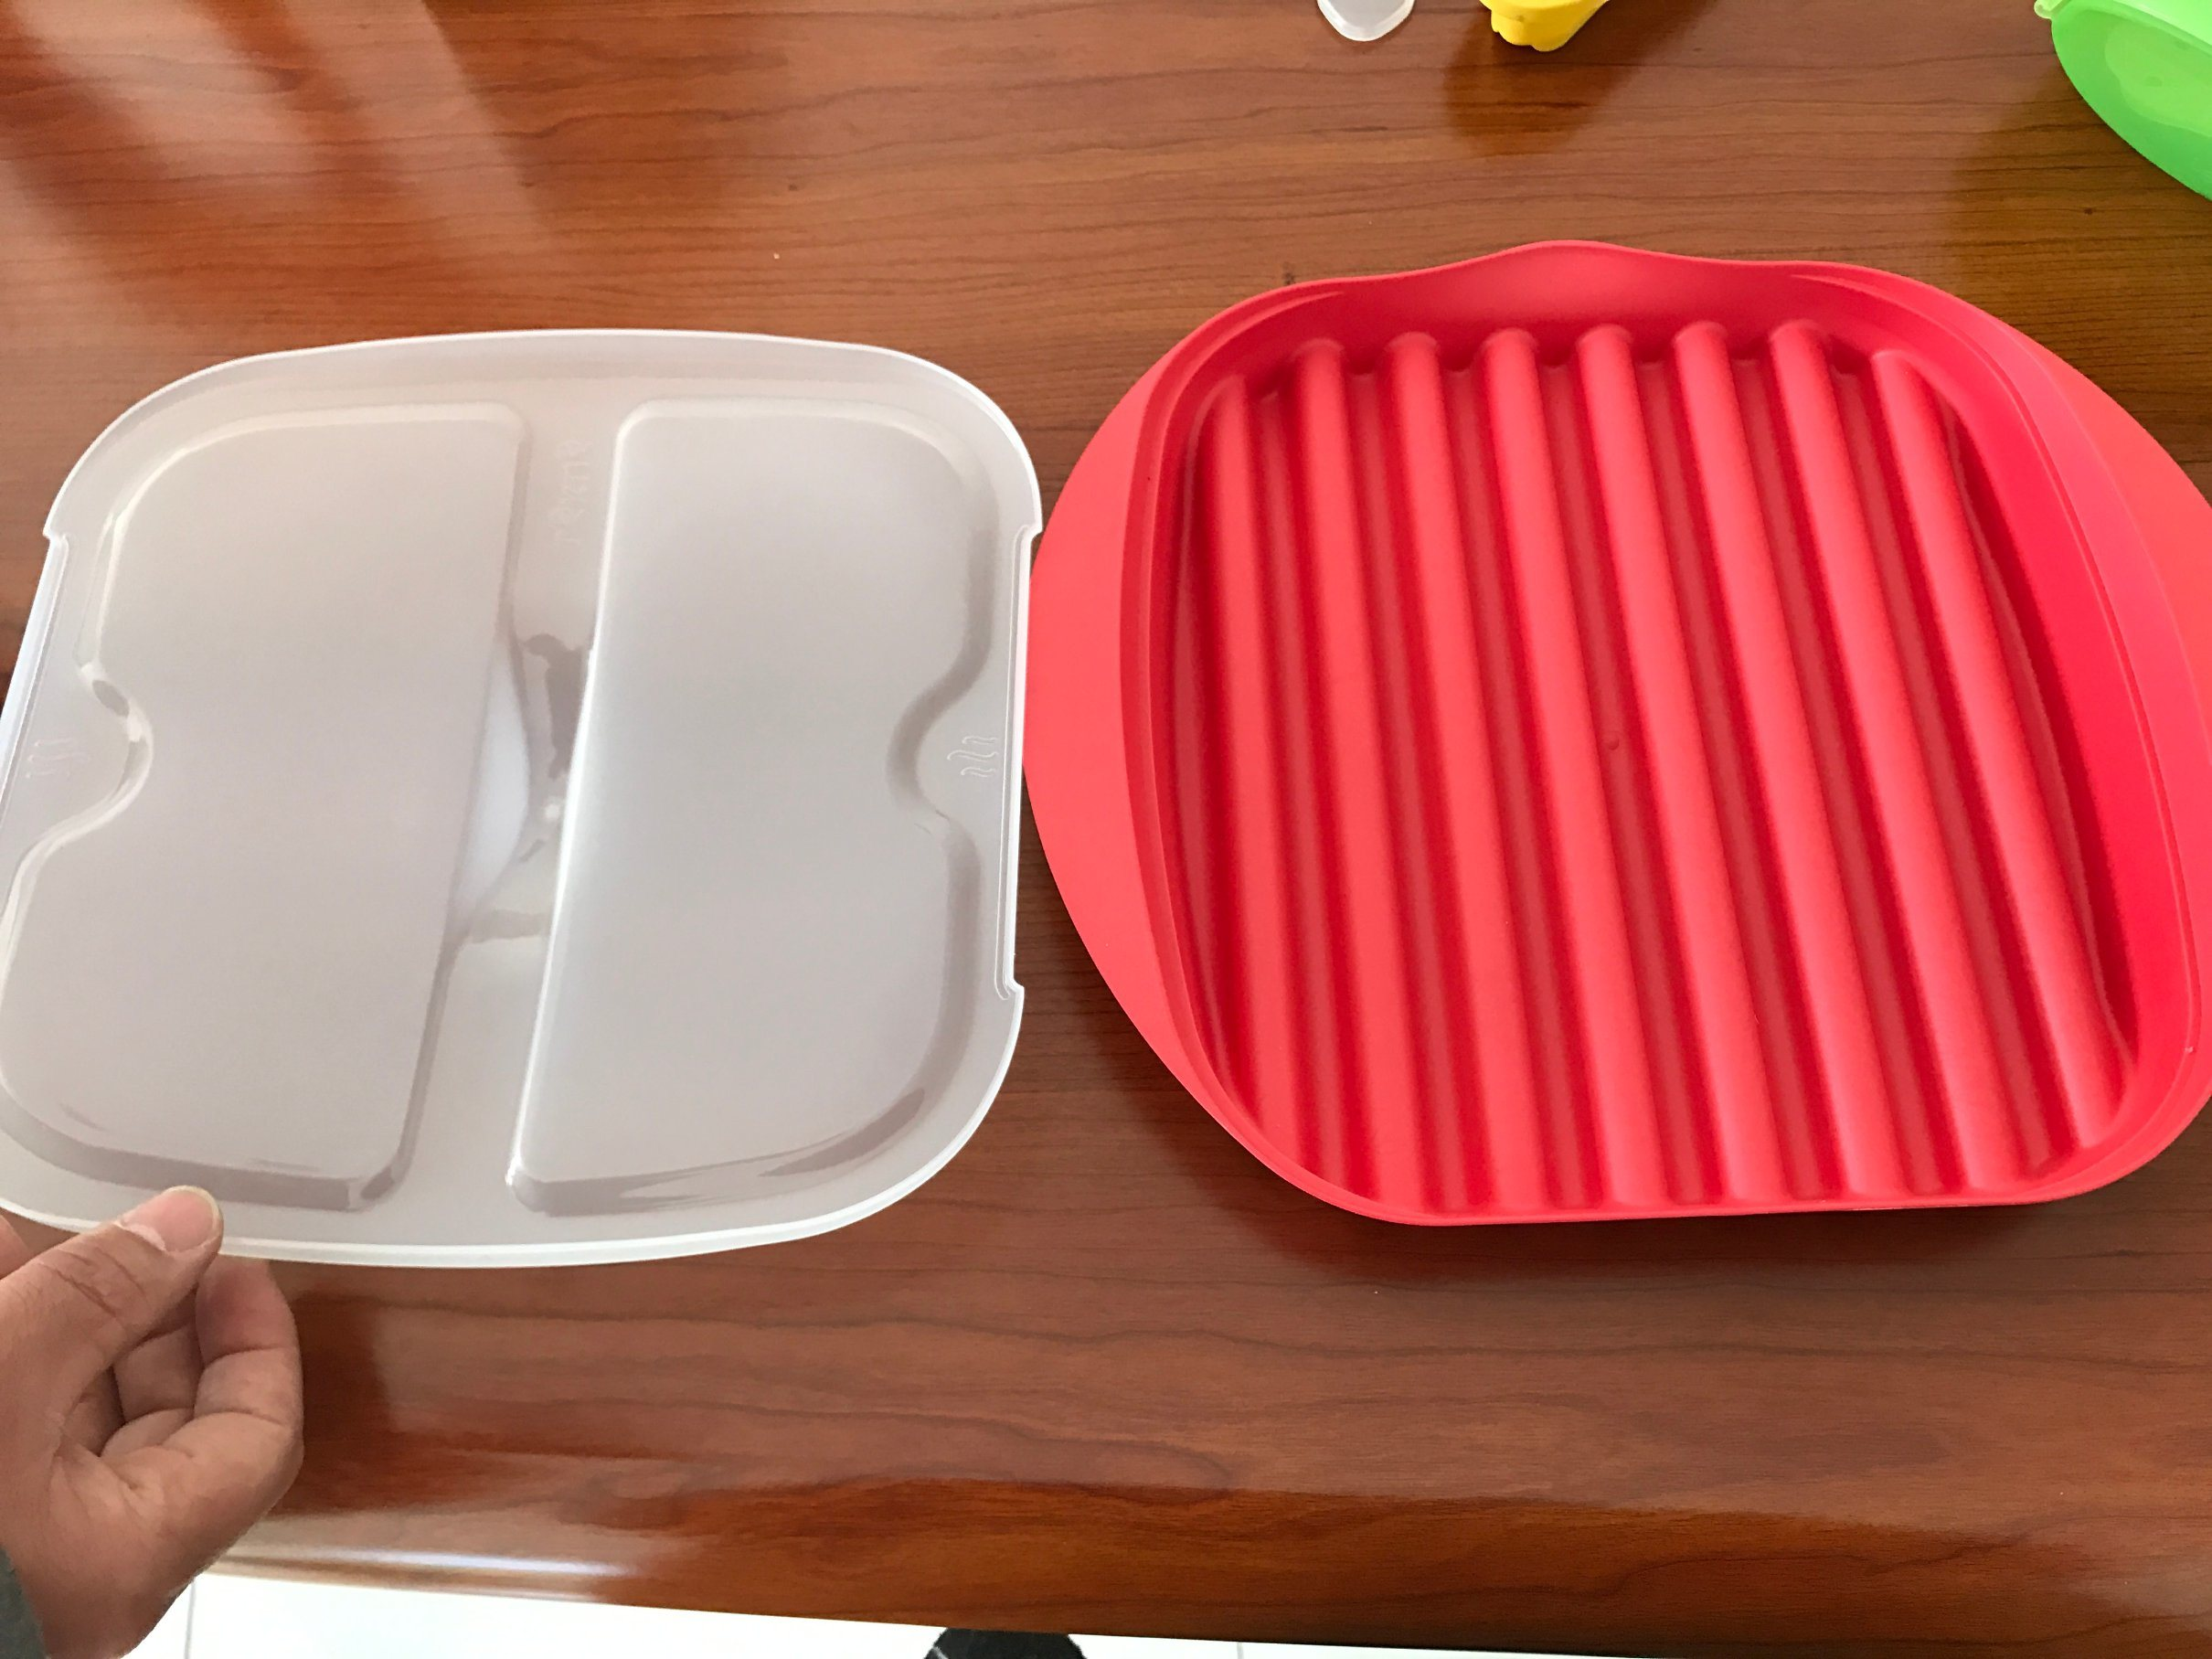 Plastic Silcone Microwave Bacon Cooker Pan/Cook Bacon in The Microwave Quickly and Cleanly